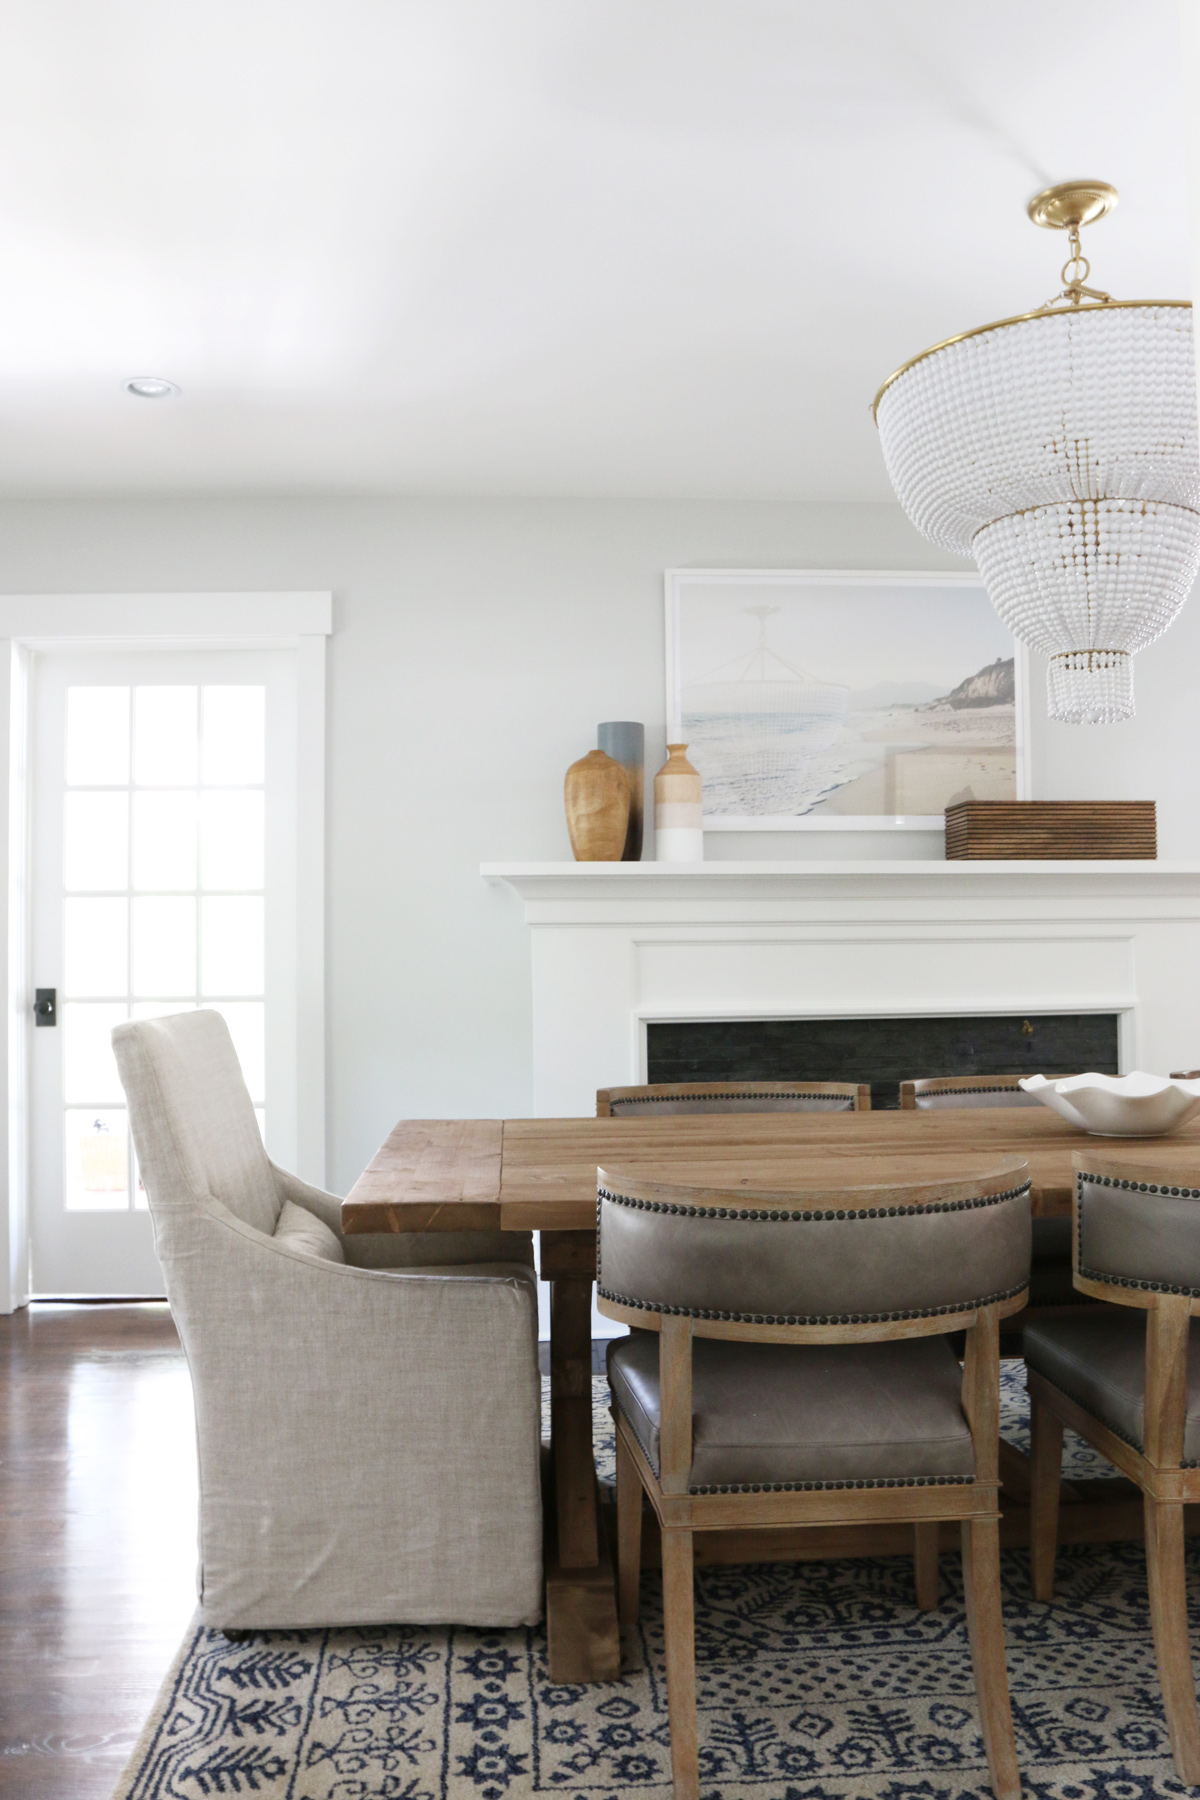 White head chair at the end of dining table